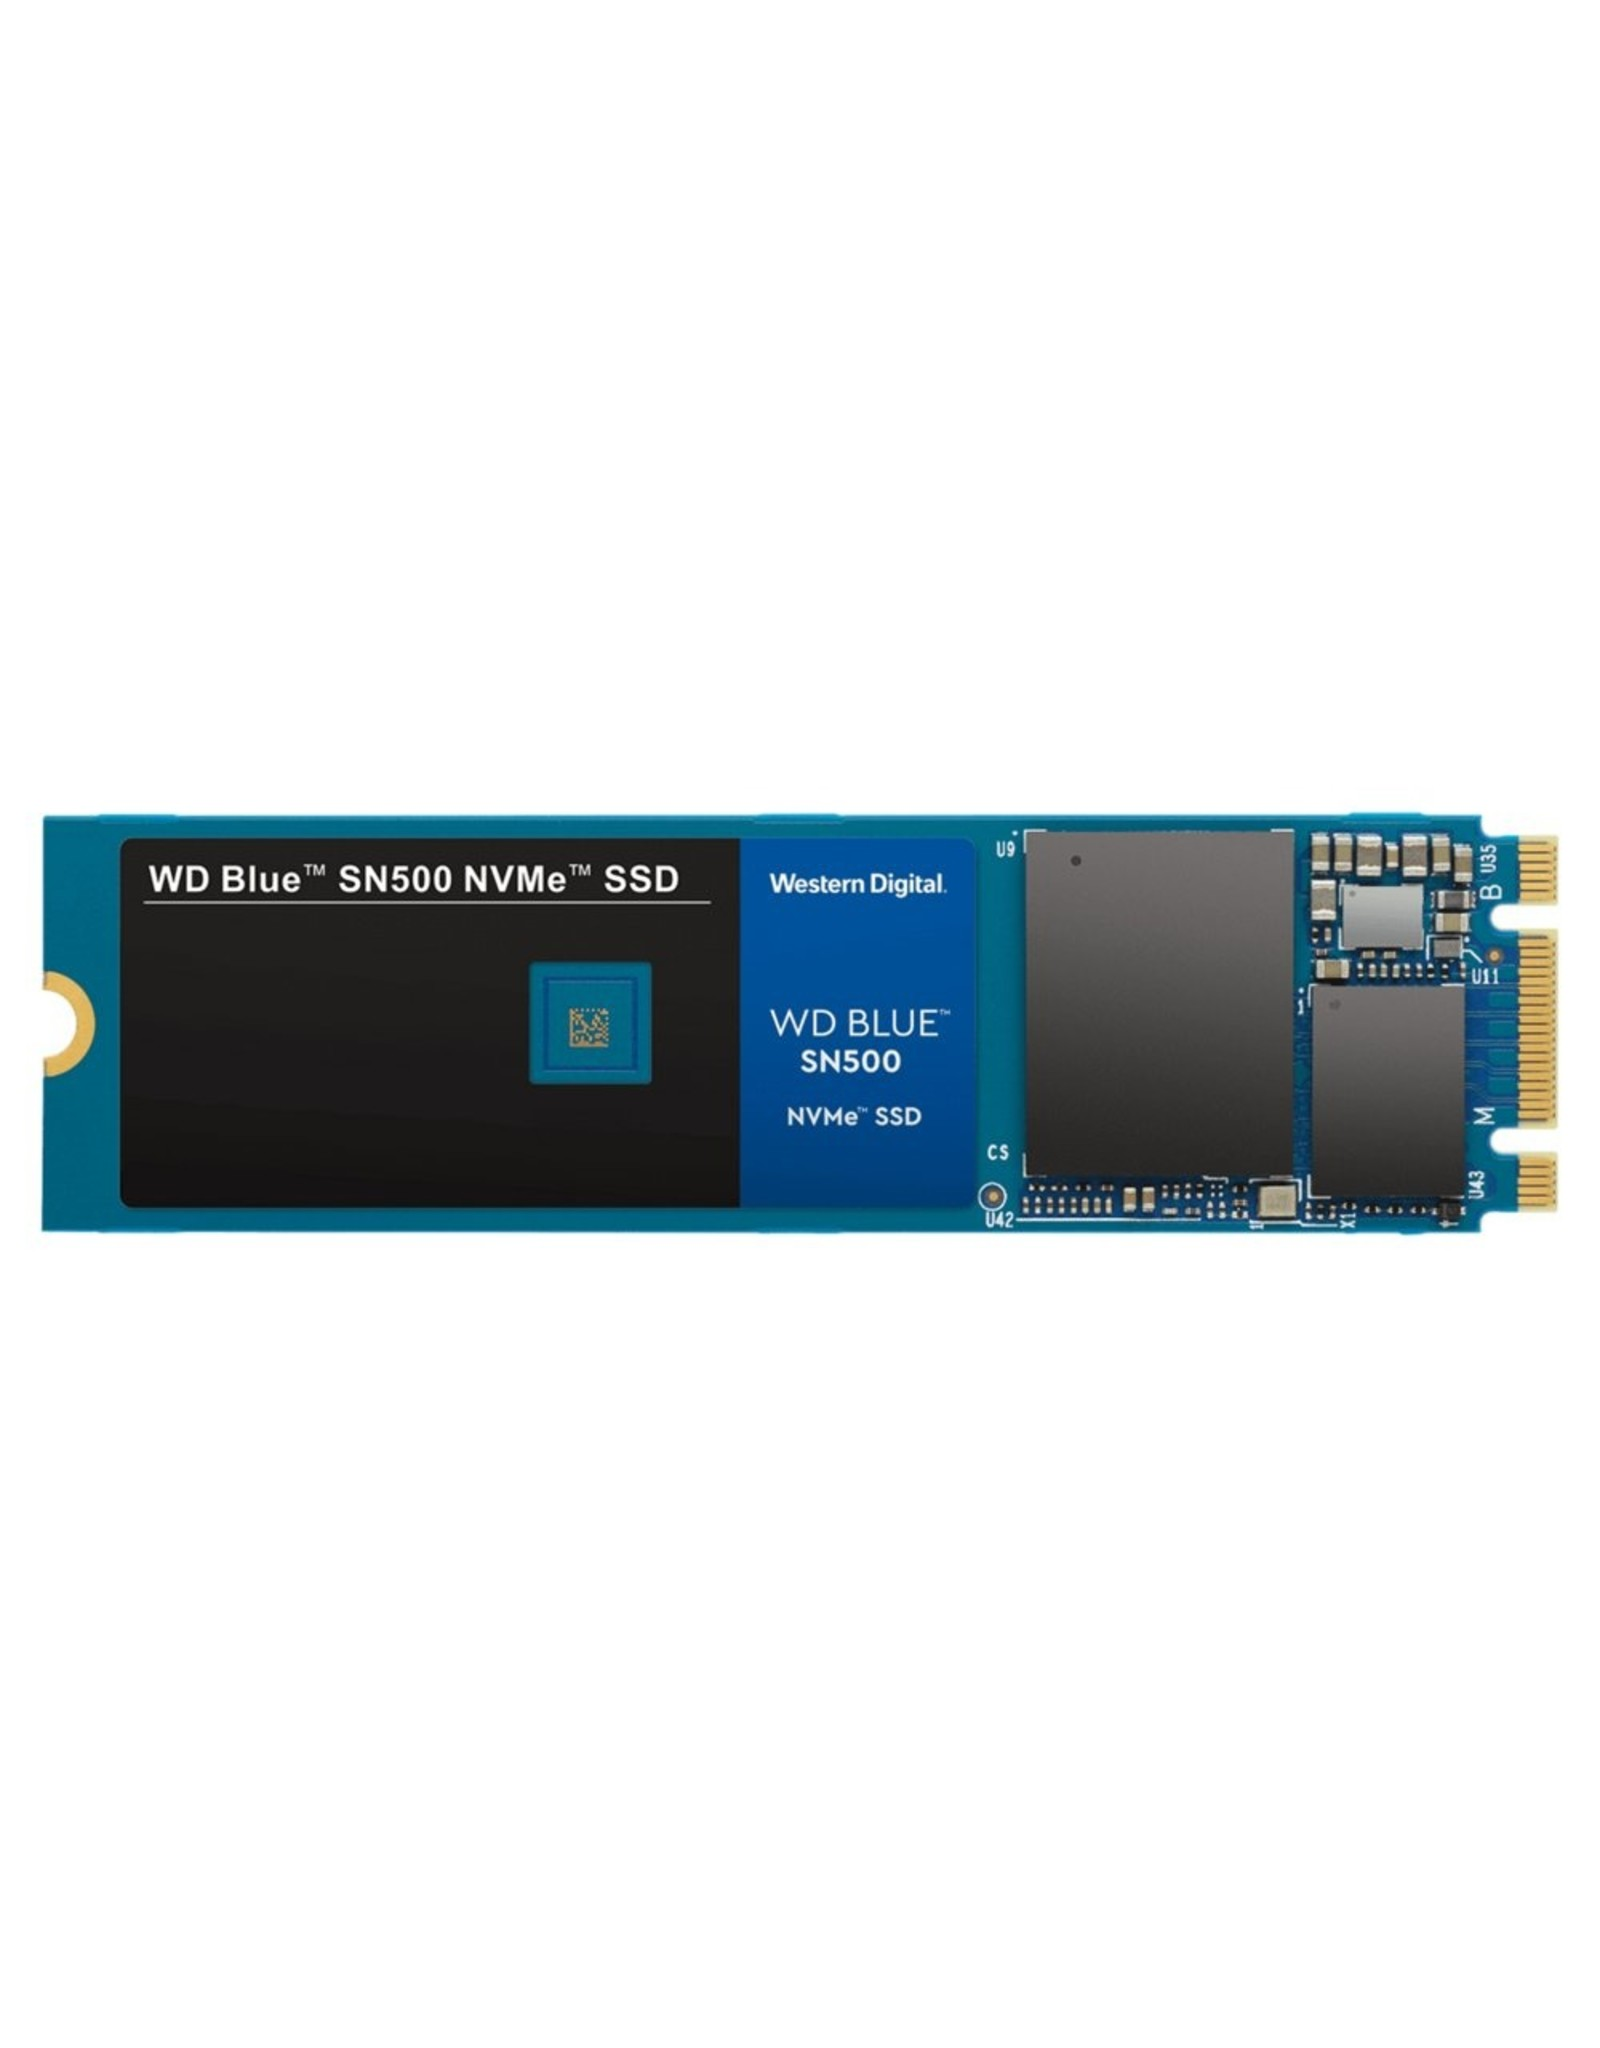 Western Digital SSD WD Blue SN550 NVMe M.2 500GB PCI Express